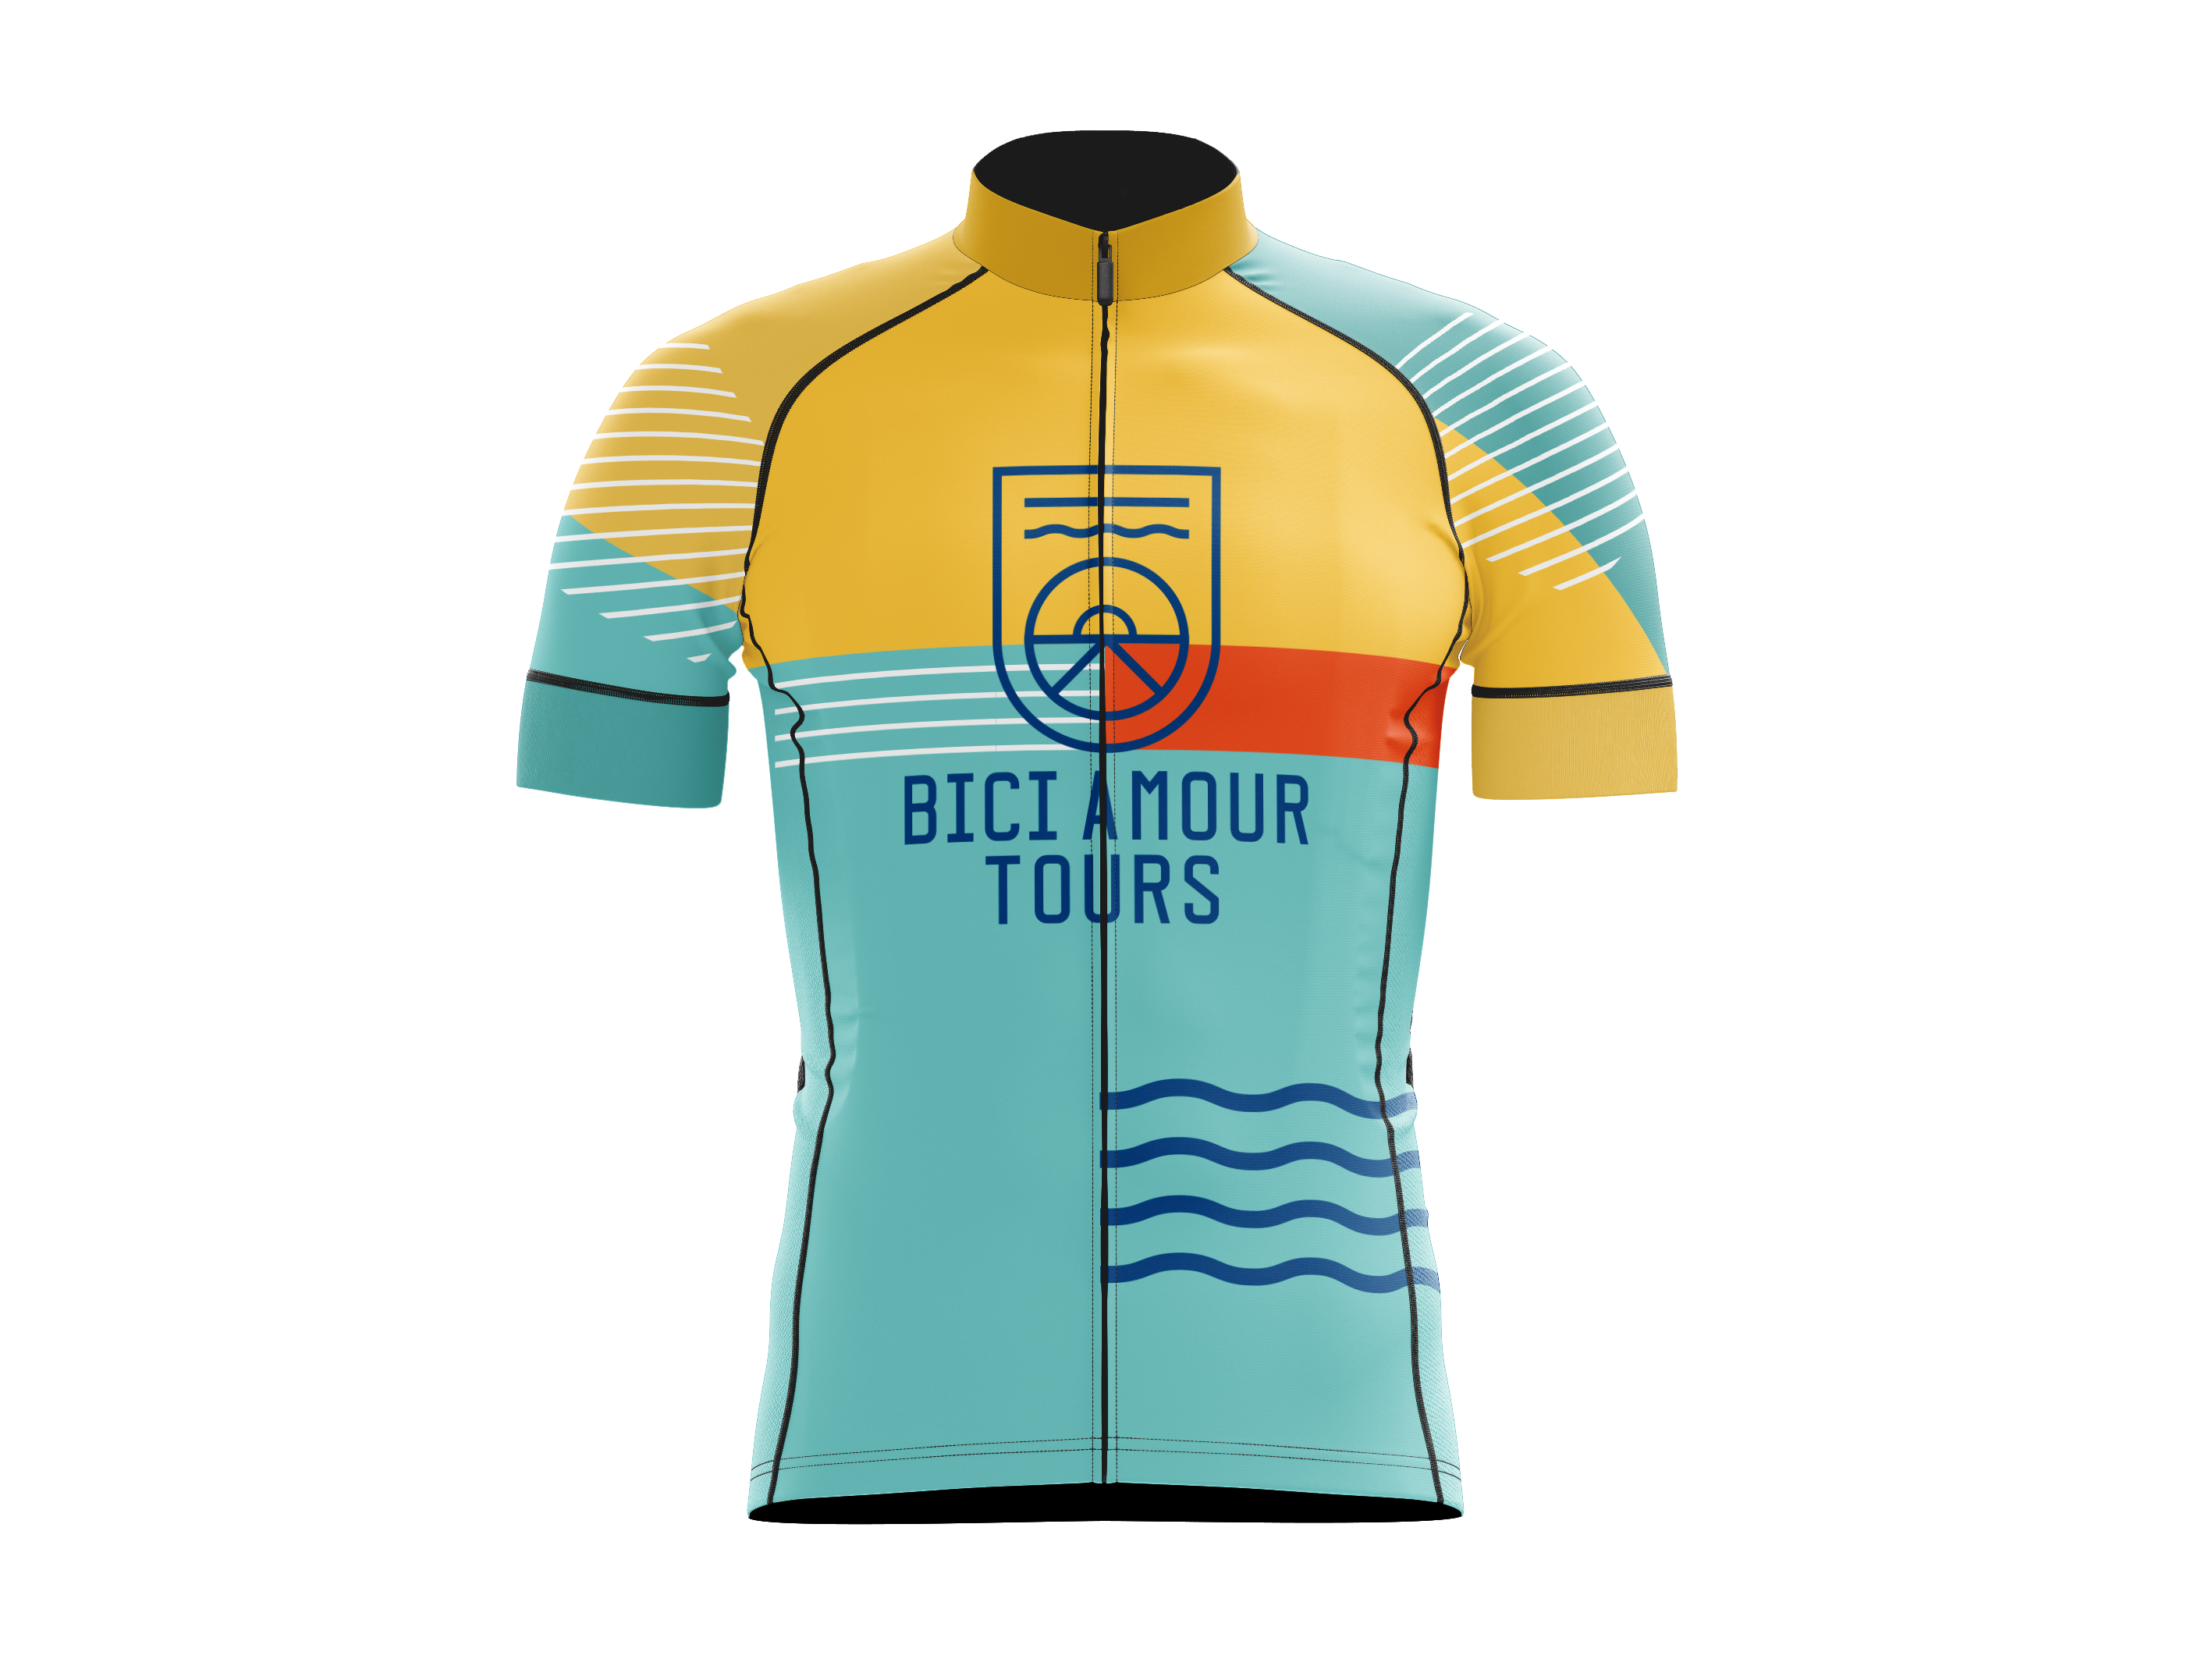 fde3685a8 Bici Amour Kit — design  createdbysouth.com.au Bike Wear